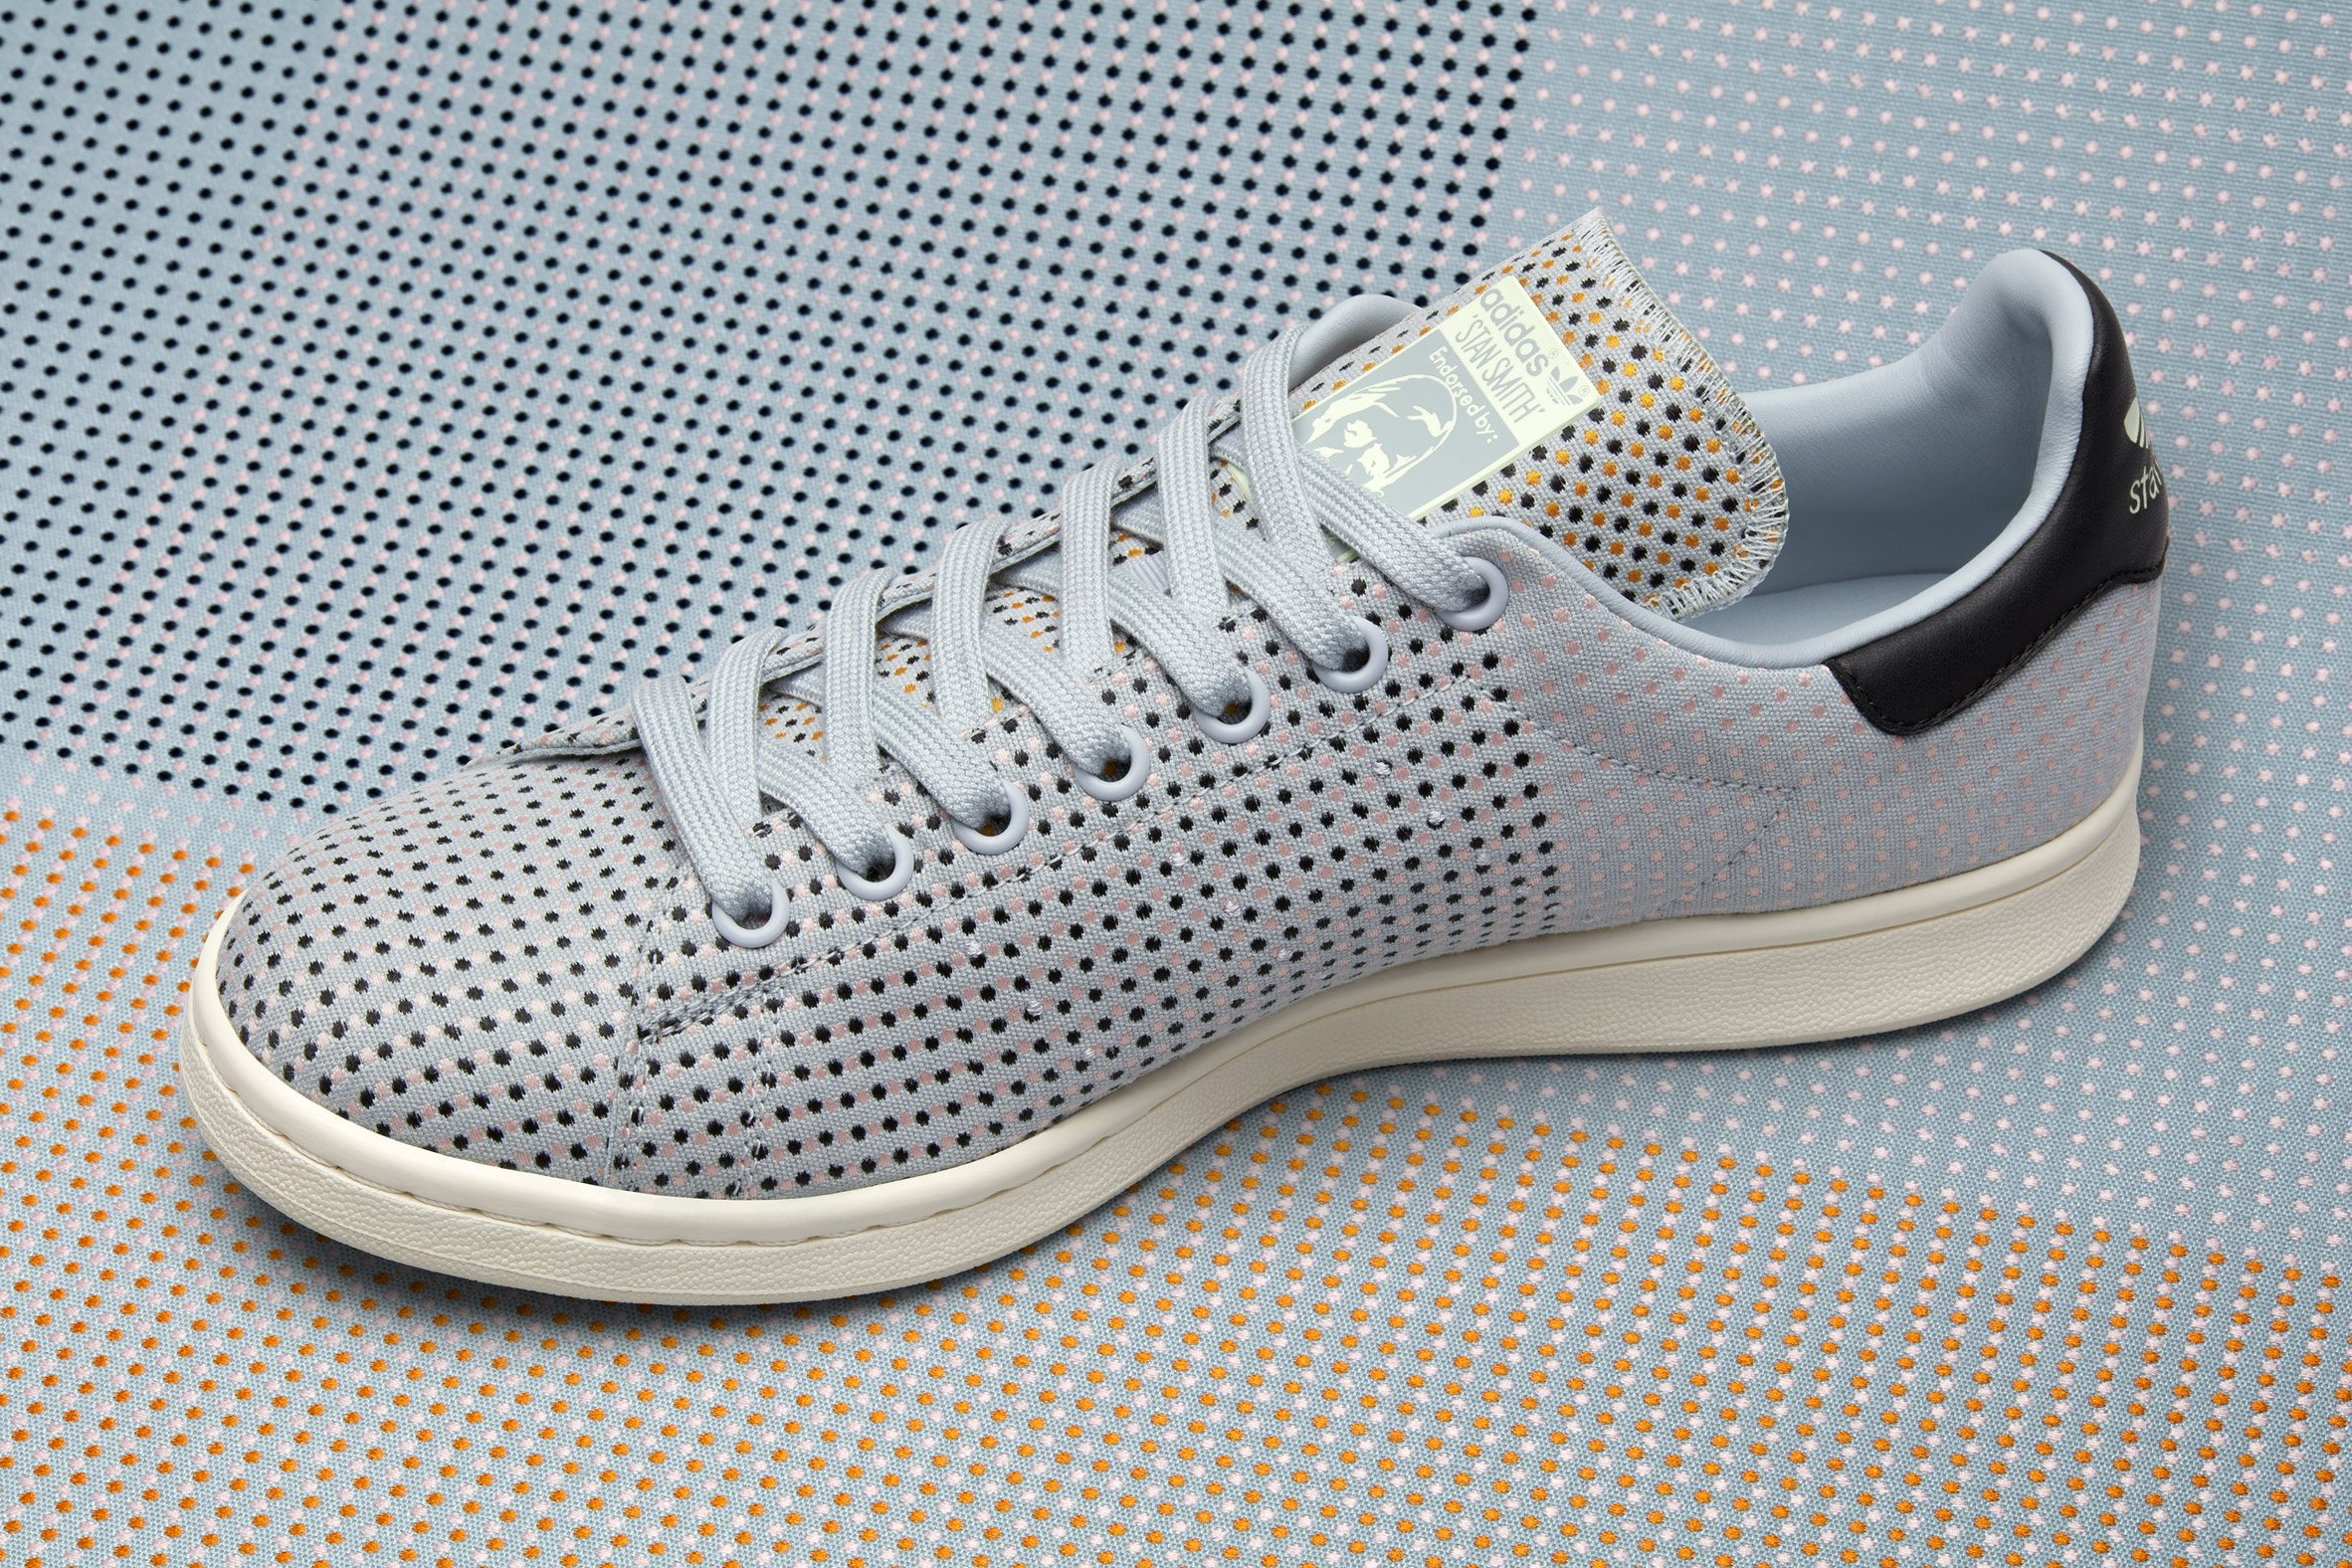 kvadrat-adidas-originals-special-edition-stan-smith-design_dezeen_2364_col_0.jpg